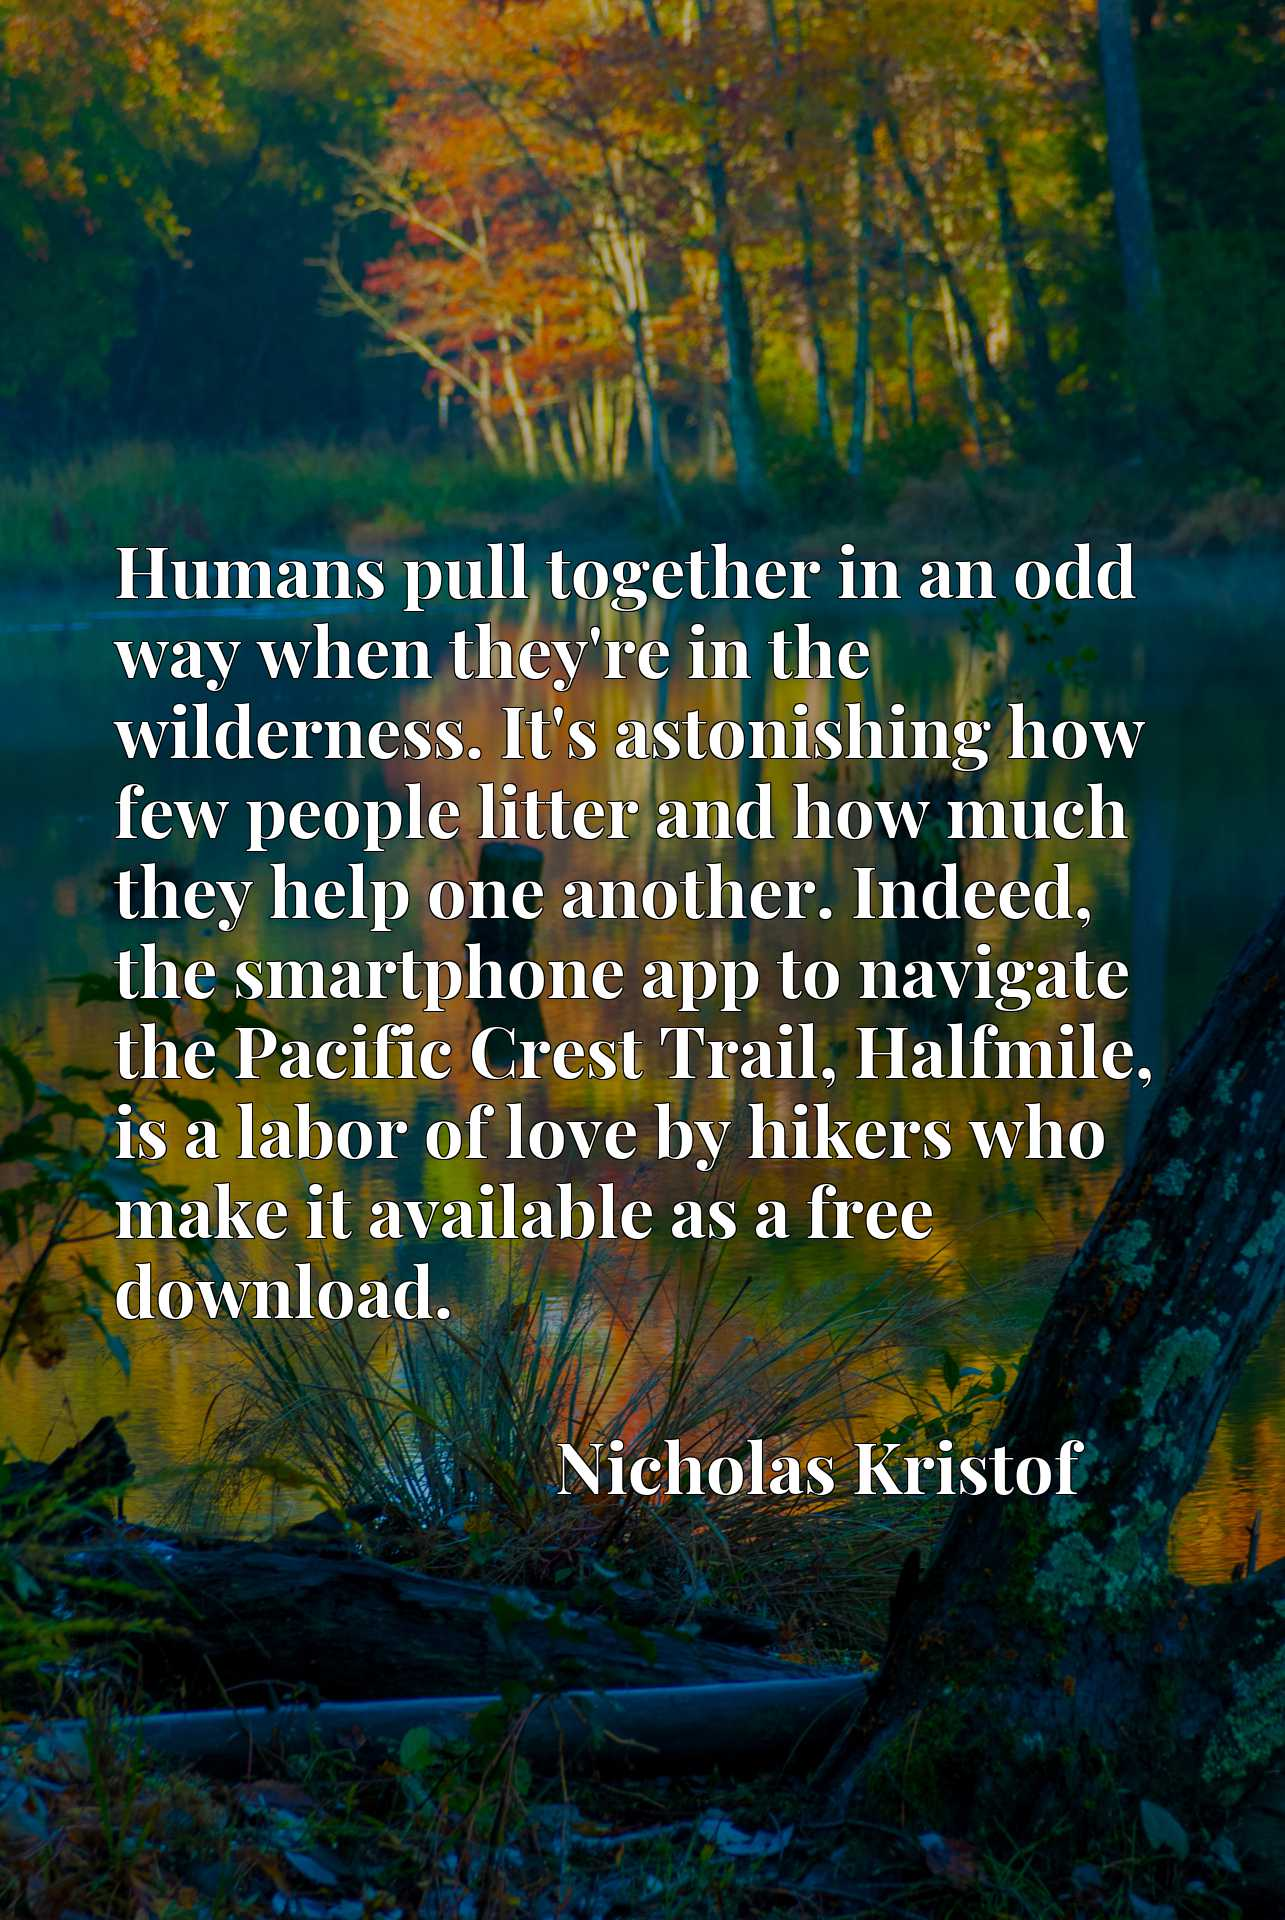 Quote Picture :Humans pull together in an odd way when they're in the wilderness. It's astonishing how few people litter and how much they help one another. Indeed, the smartphone app to navigate the Pacific Crest Trail, Halfmile, is a labor of love by hikers who make it available as a free download.